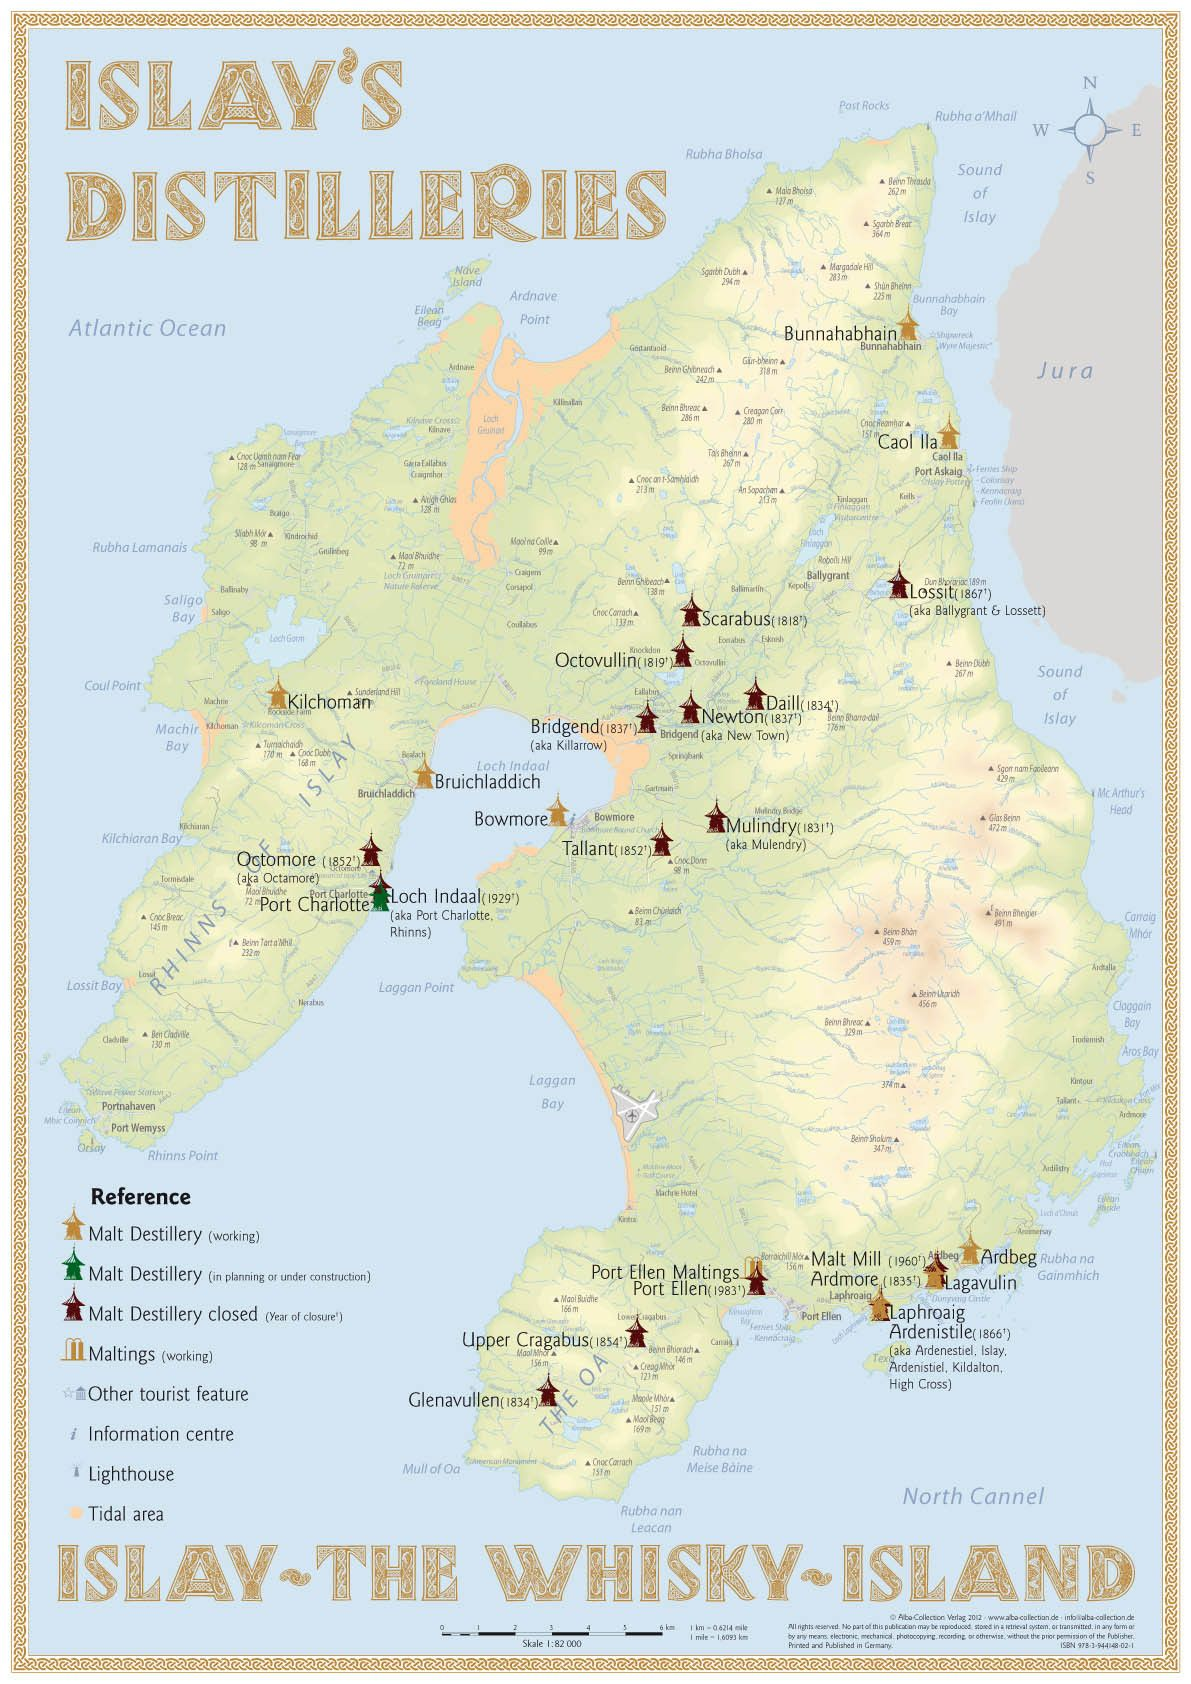 Scotland S Isle Of Islay S Whisky Distilleries Infographic